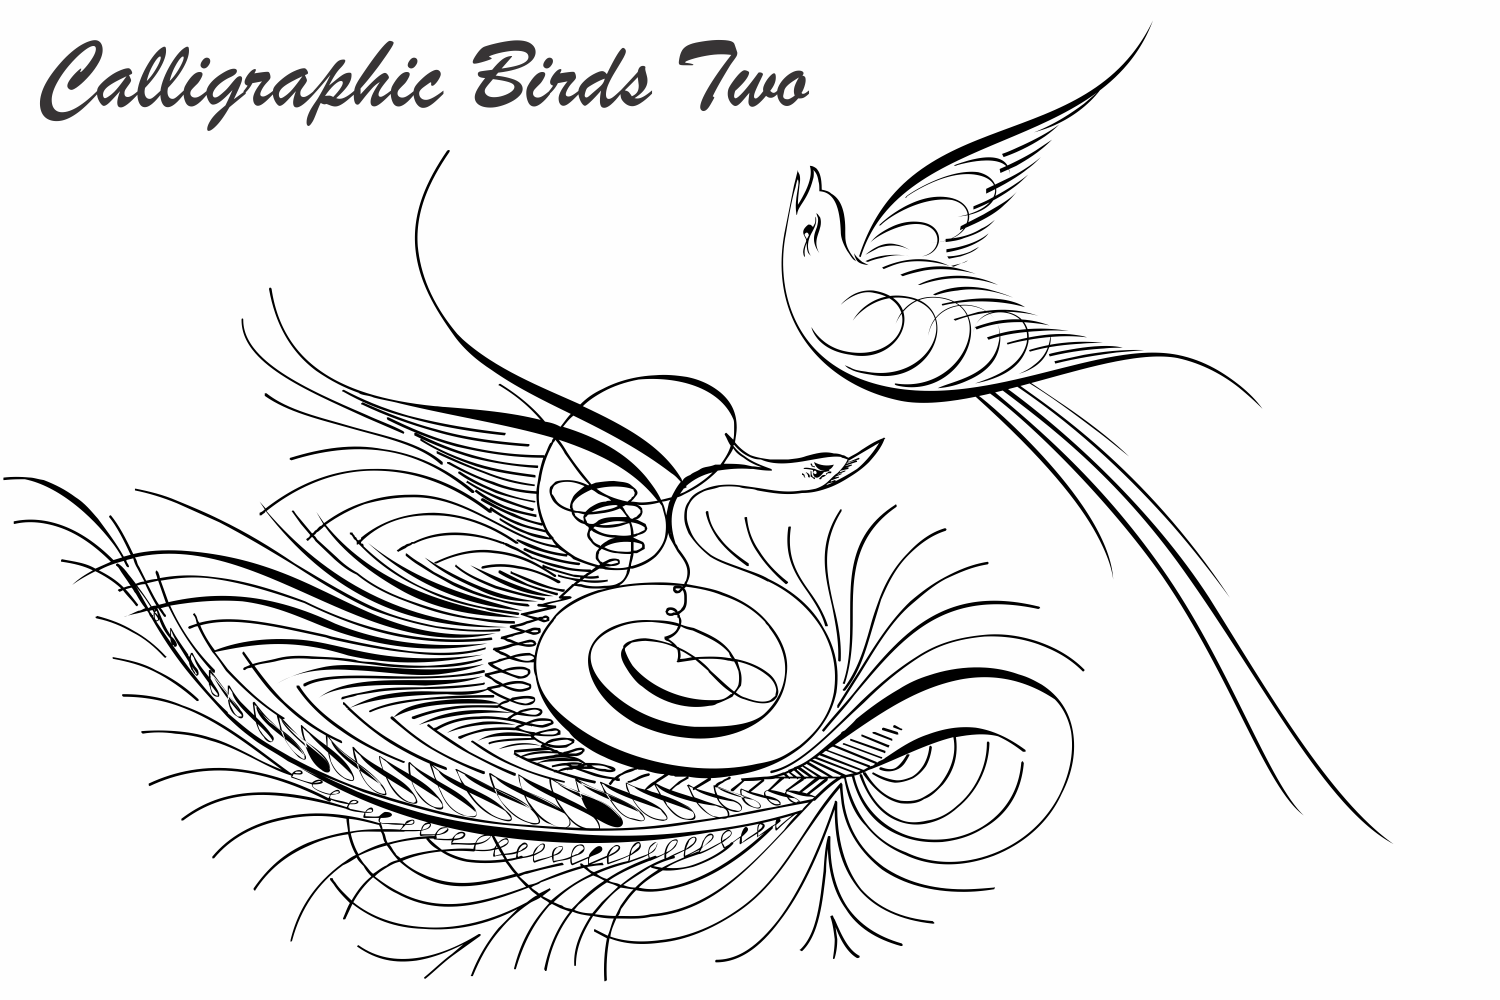 Calligraphic Birds Two example image 3